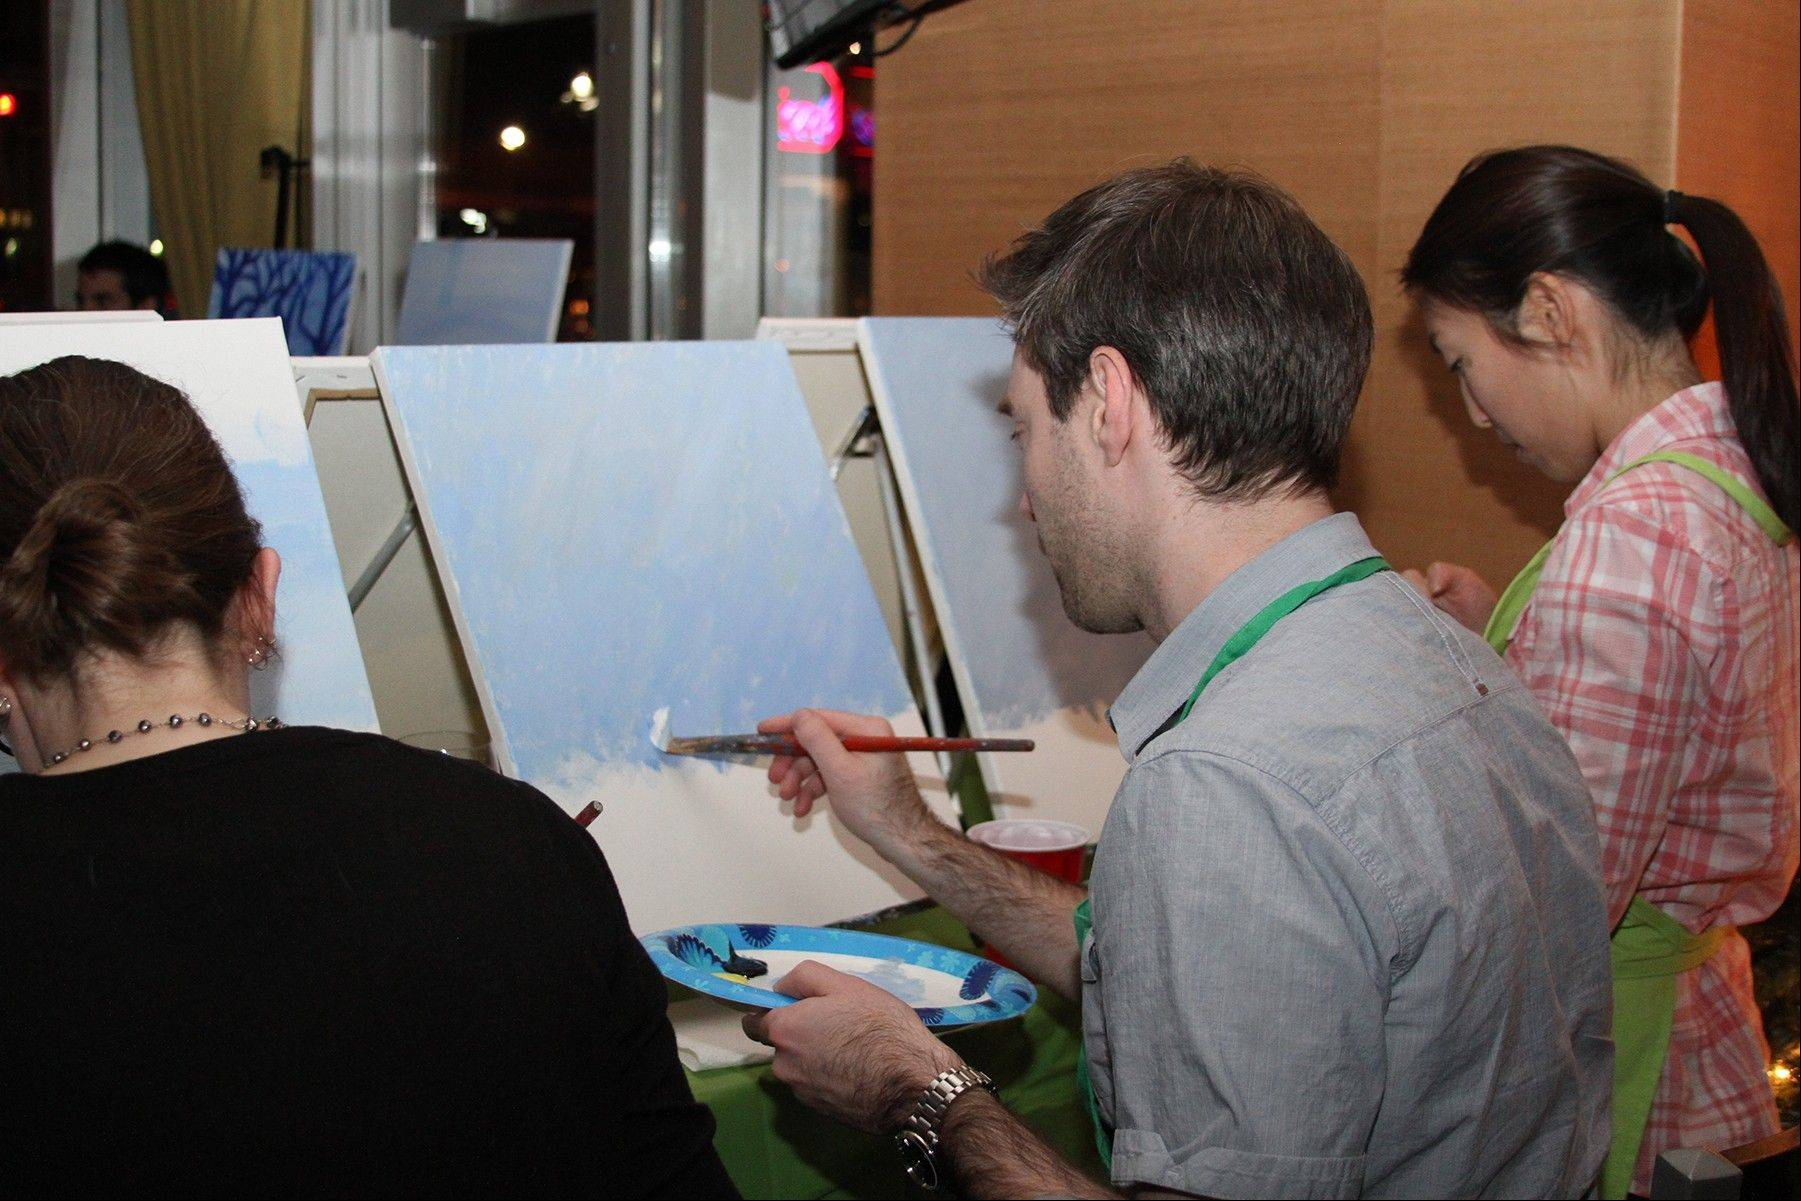 In this Dec. 4, 2013, photo, provided by Lattice Engines, Lattice Engines�s Boston office participates in Paint Nite, in Boston. Paint Nite is a service event that gives painting lessons at bars and restaurants. About sixty-five people attended.